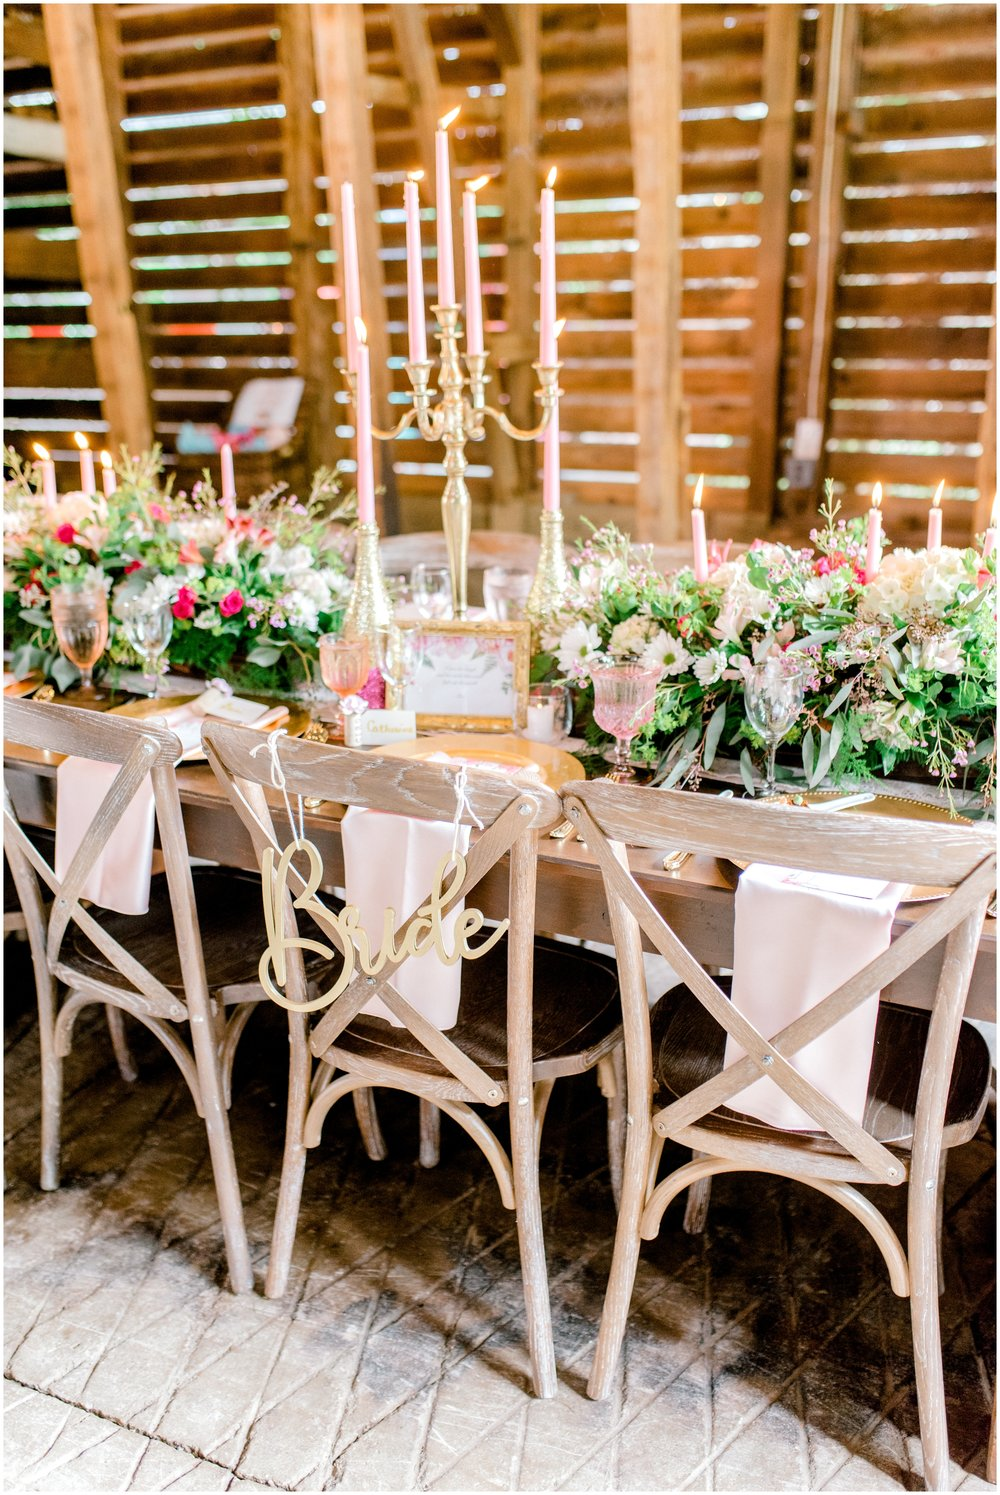 Spring Winery Bridal Shower at Nissley Vineyards in Lancaster County, PA - Krista Brackin Photography_0044.jpg